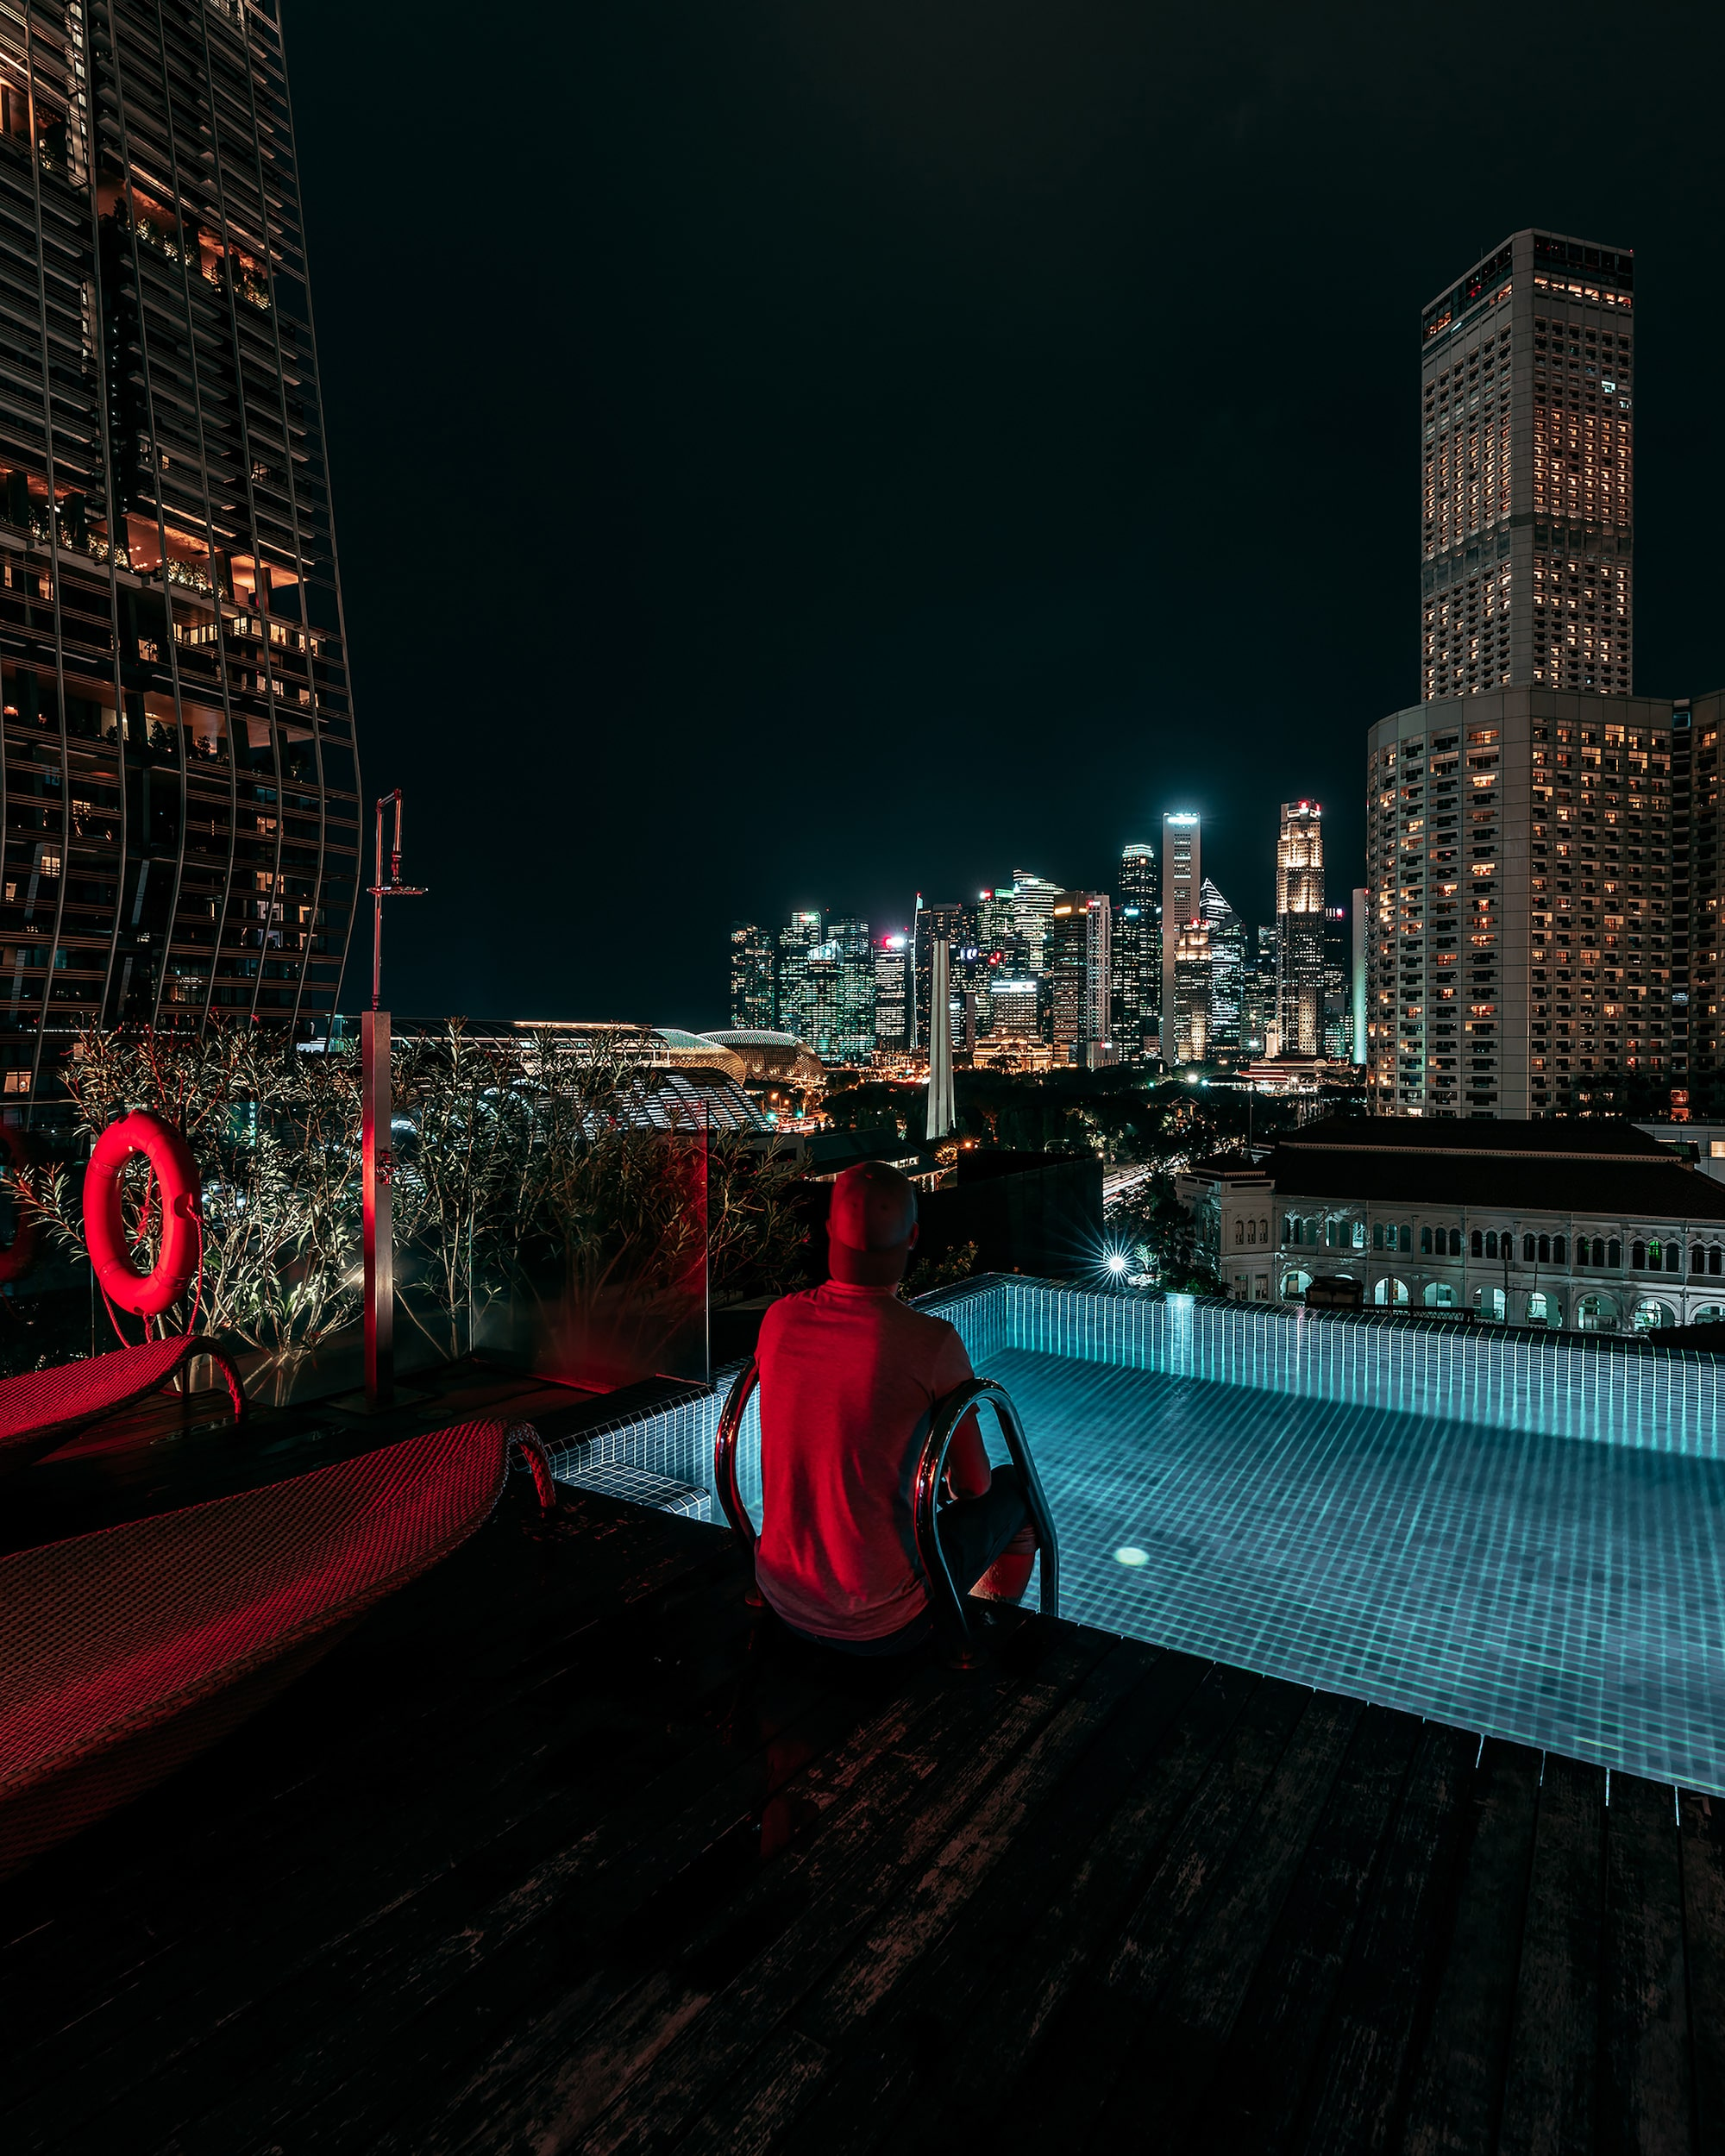 Hotel rooftop pool view of Singapore cityscape at night